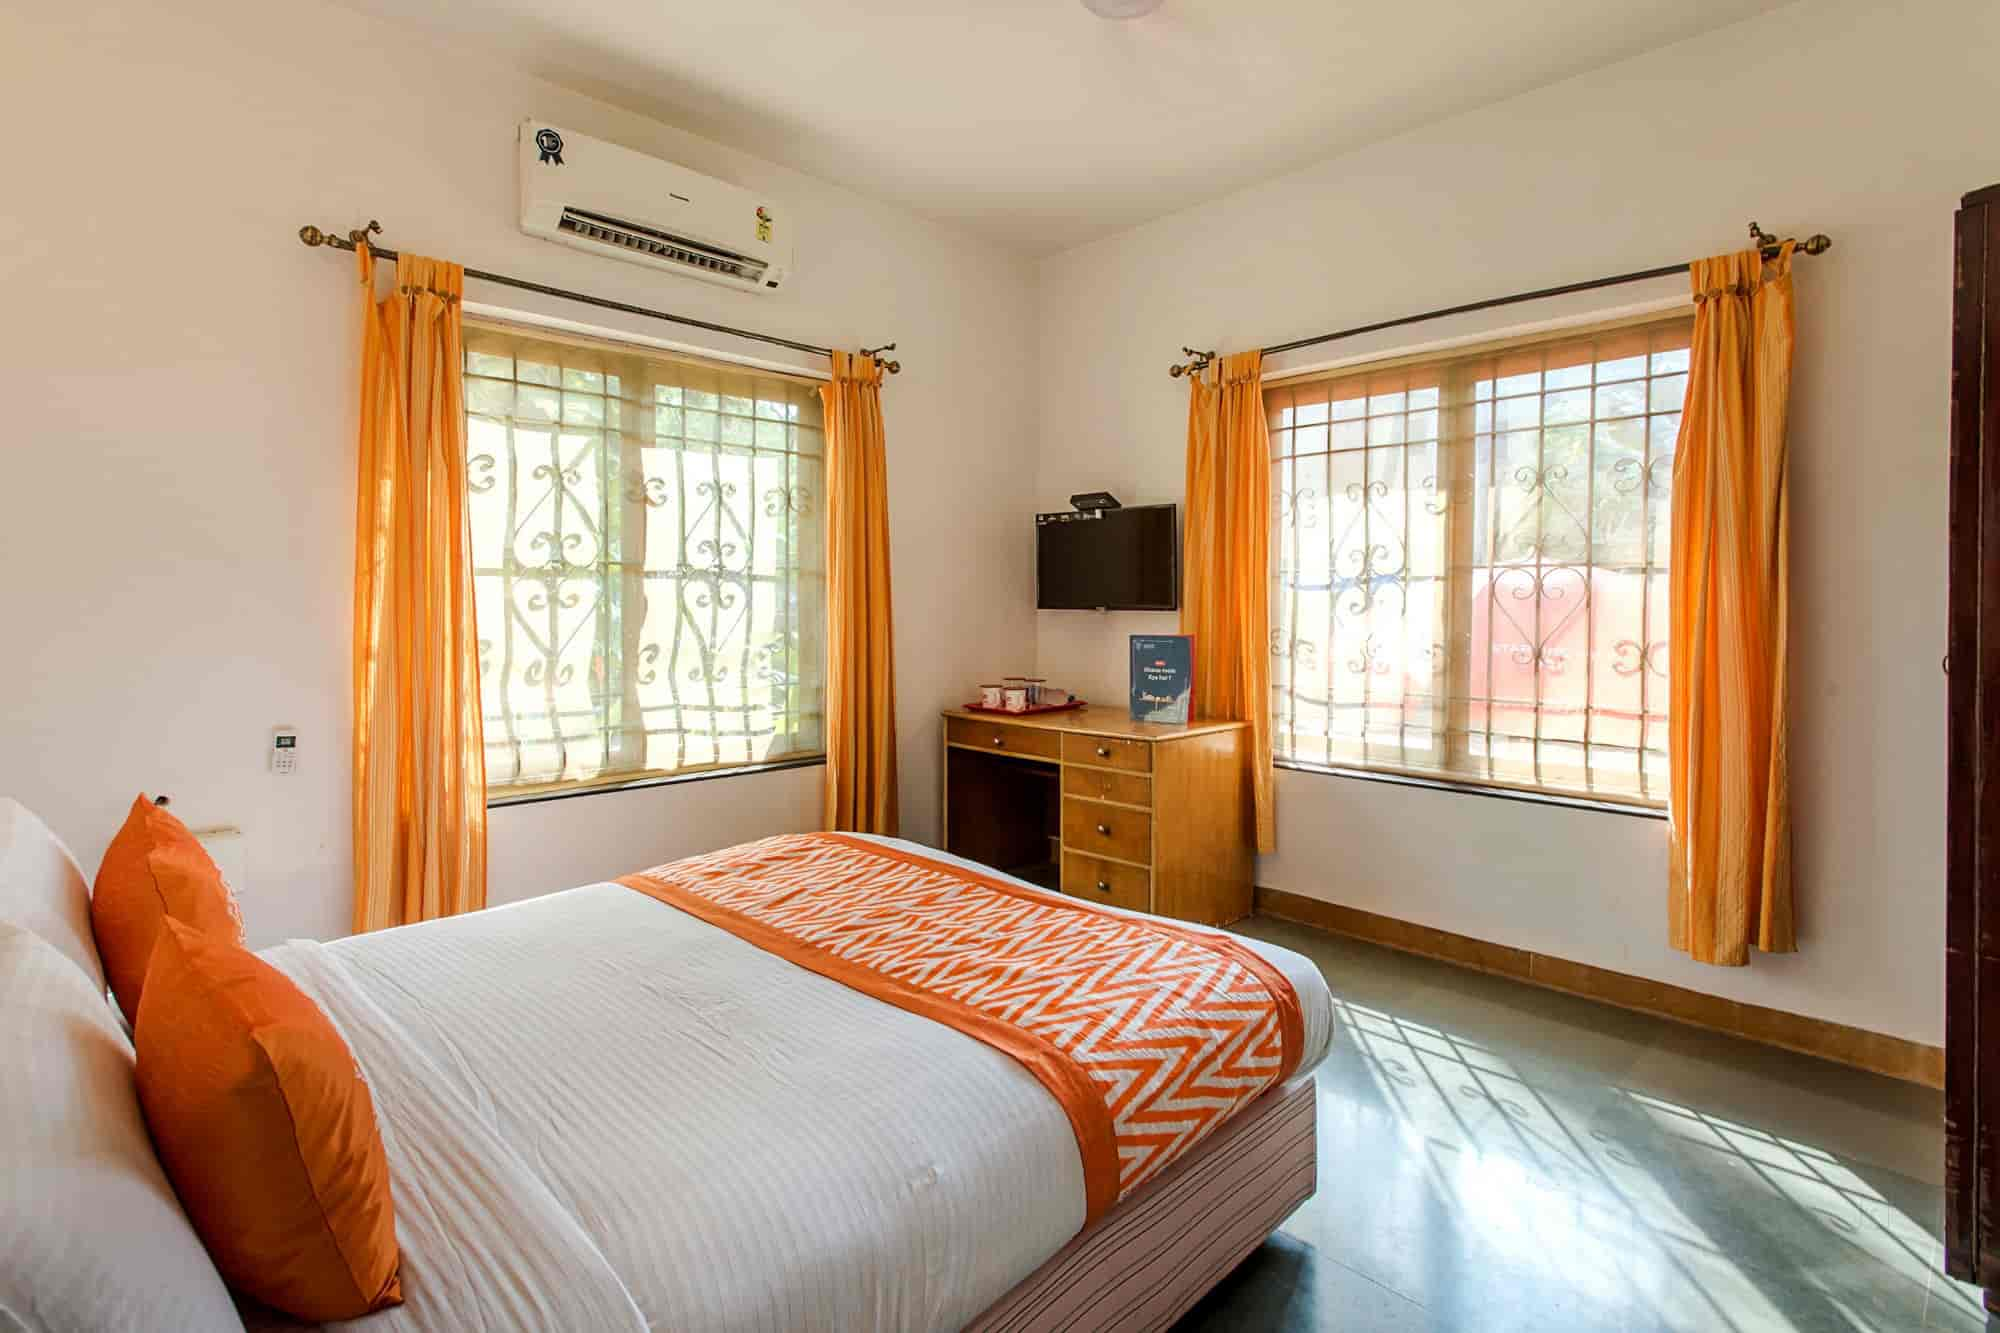 Oyo Rooms 129 Calangute Hotels In Goa Justdial